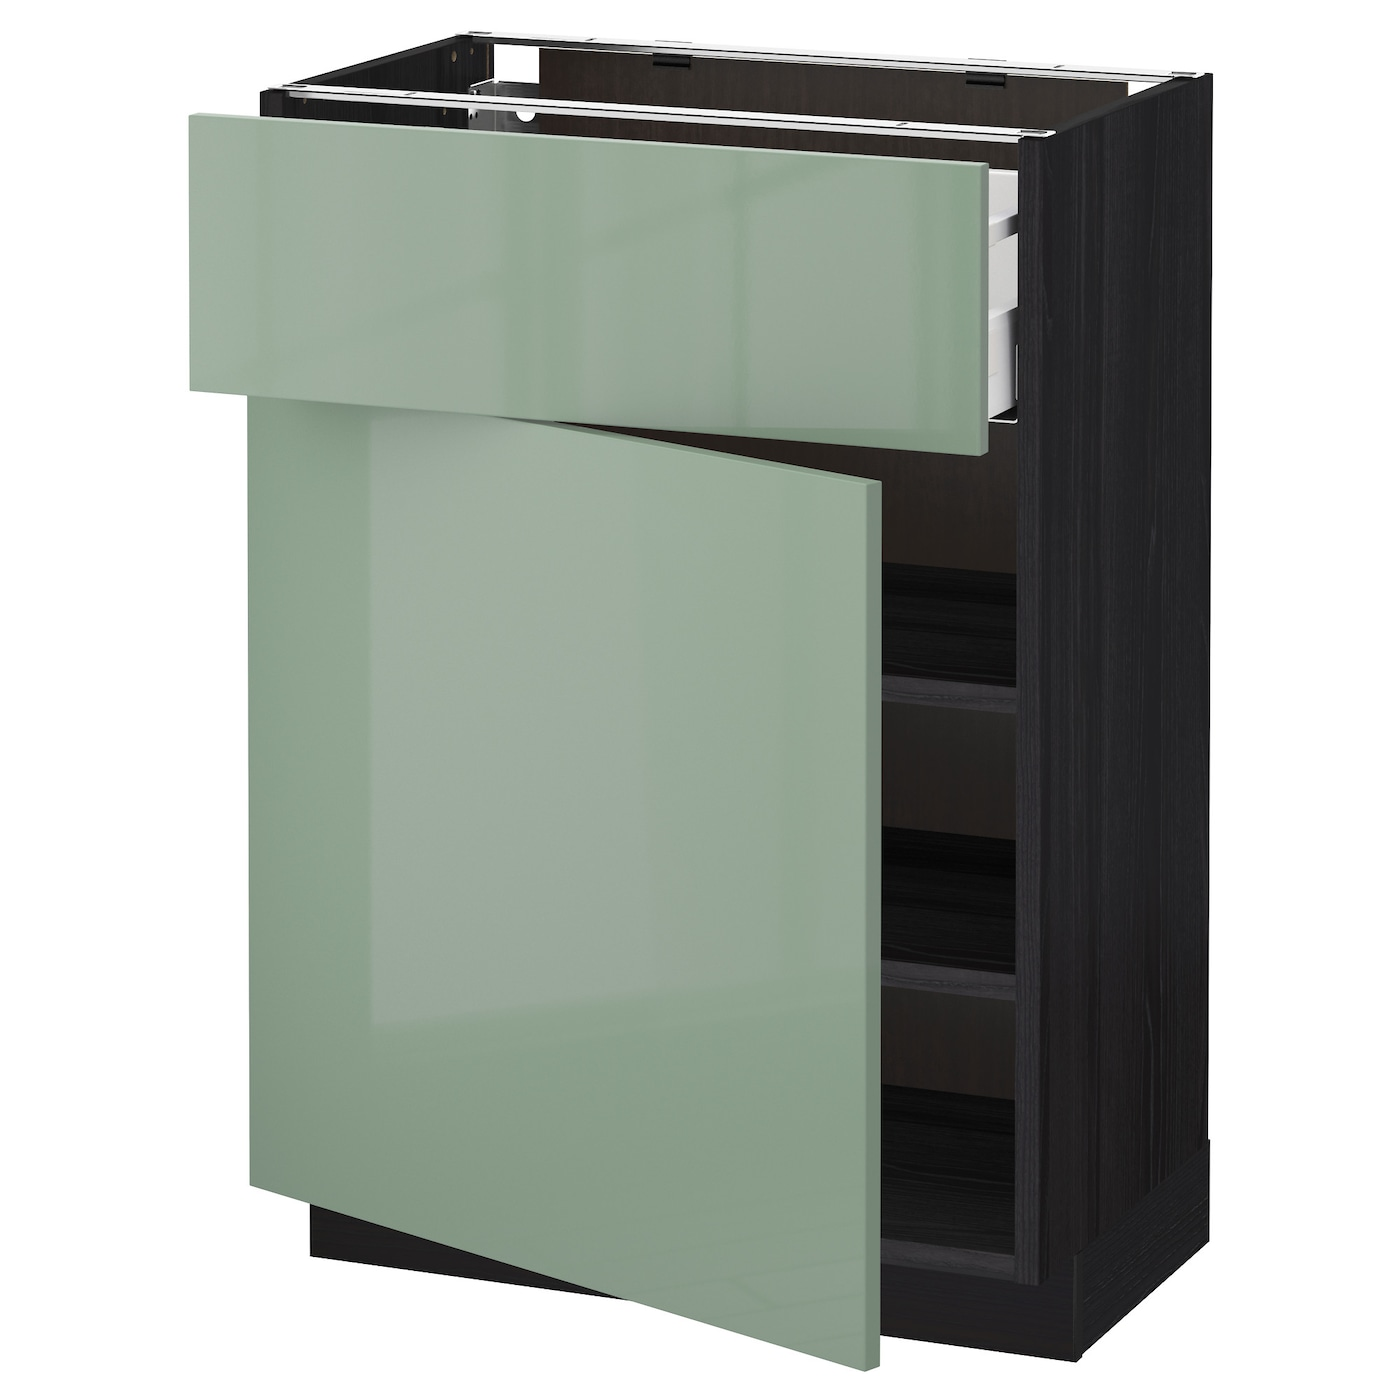 Ikea Kitchen Cabinet Lighting: METOD/MAXIMERA Base Cabinet With Drawer/door Black/kallarp